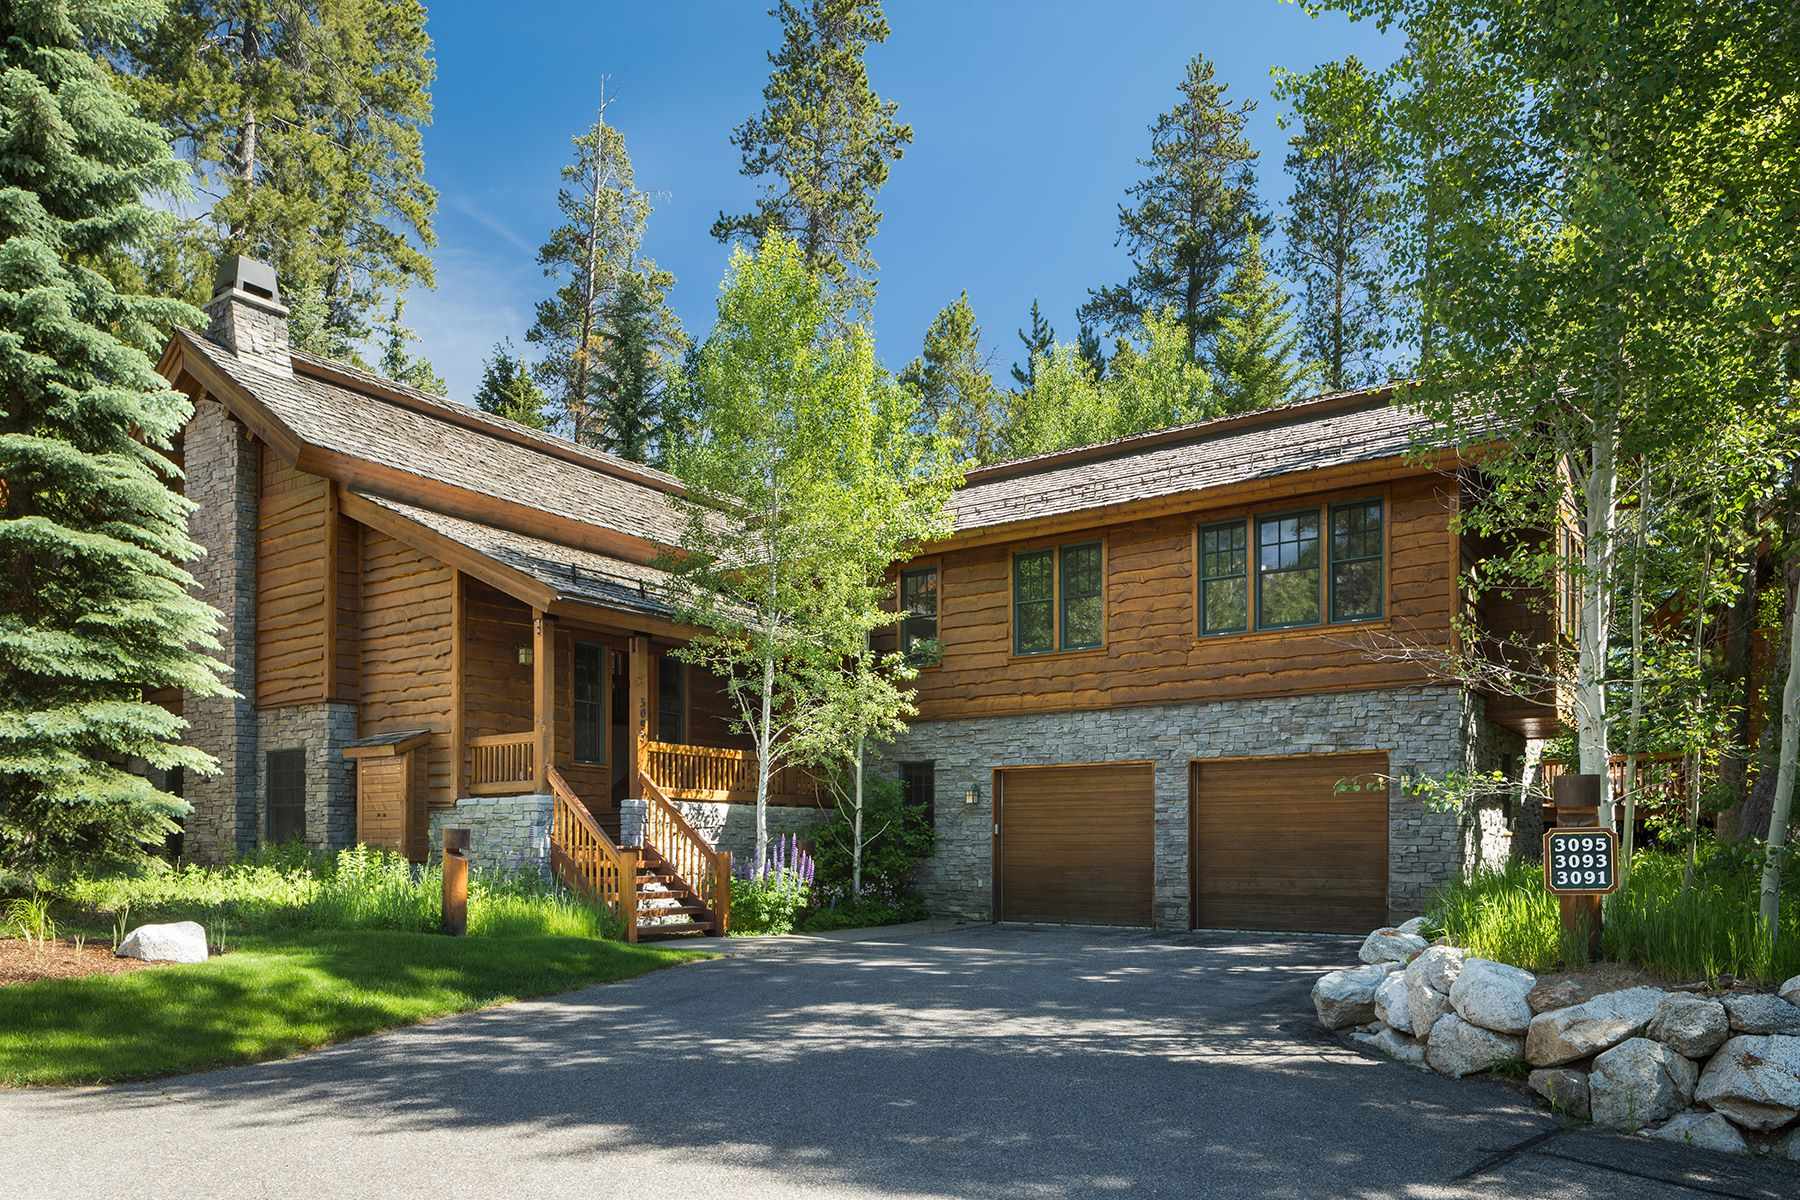 townhouses のために 売買 アット Rare Granite Ridge Homestead 3093 W Arrowhead Road, Teton Village, ワイオミング 83025 アメリカ